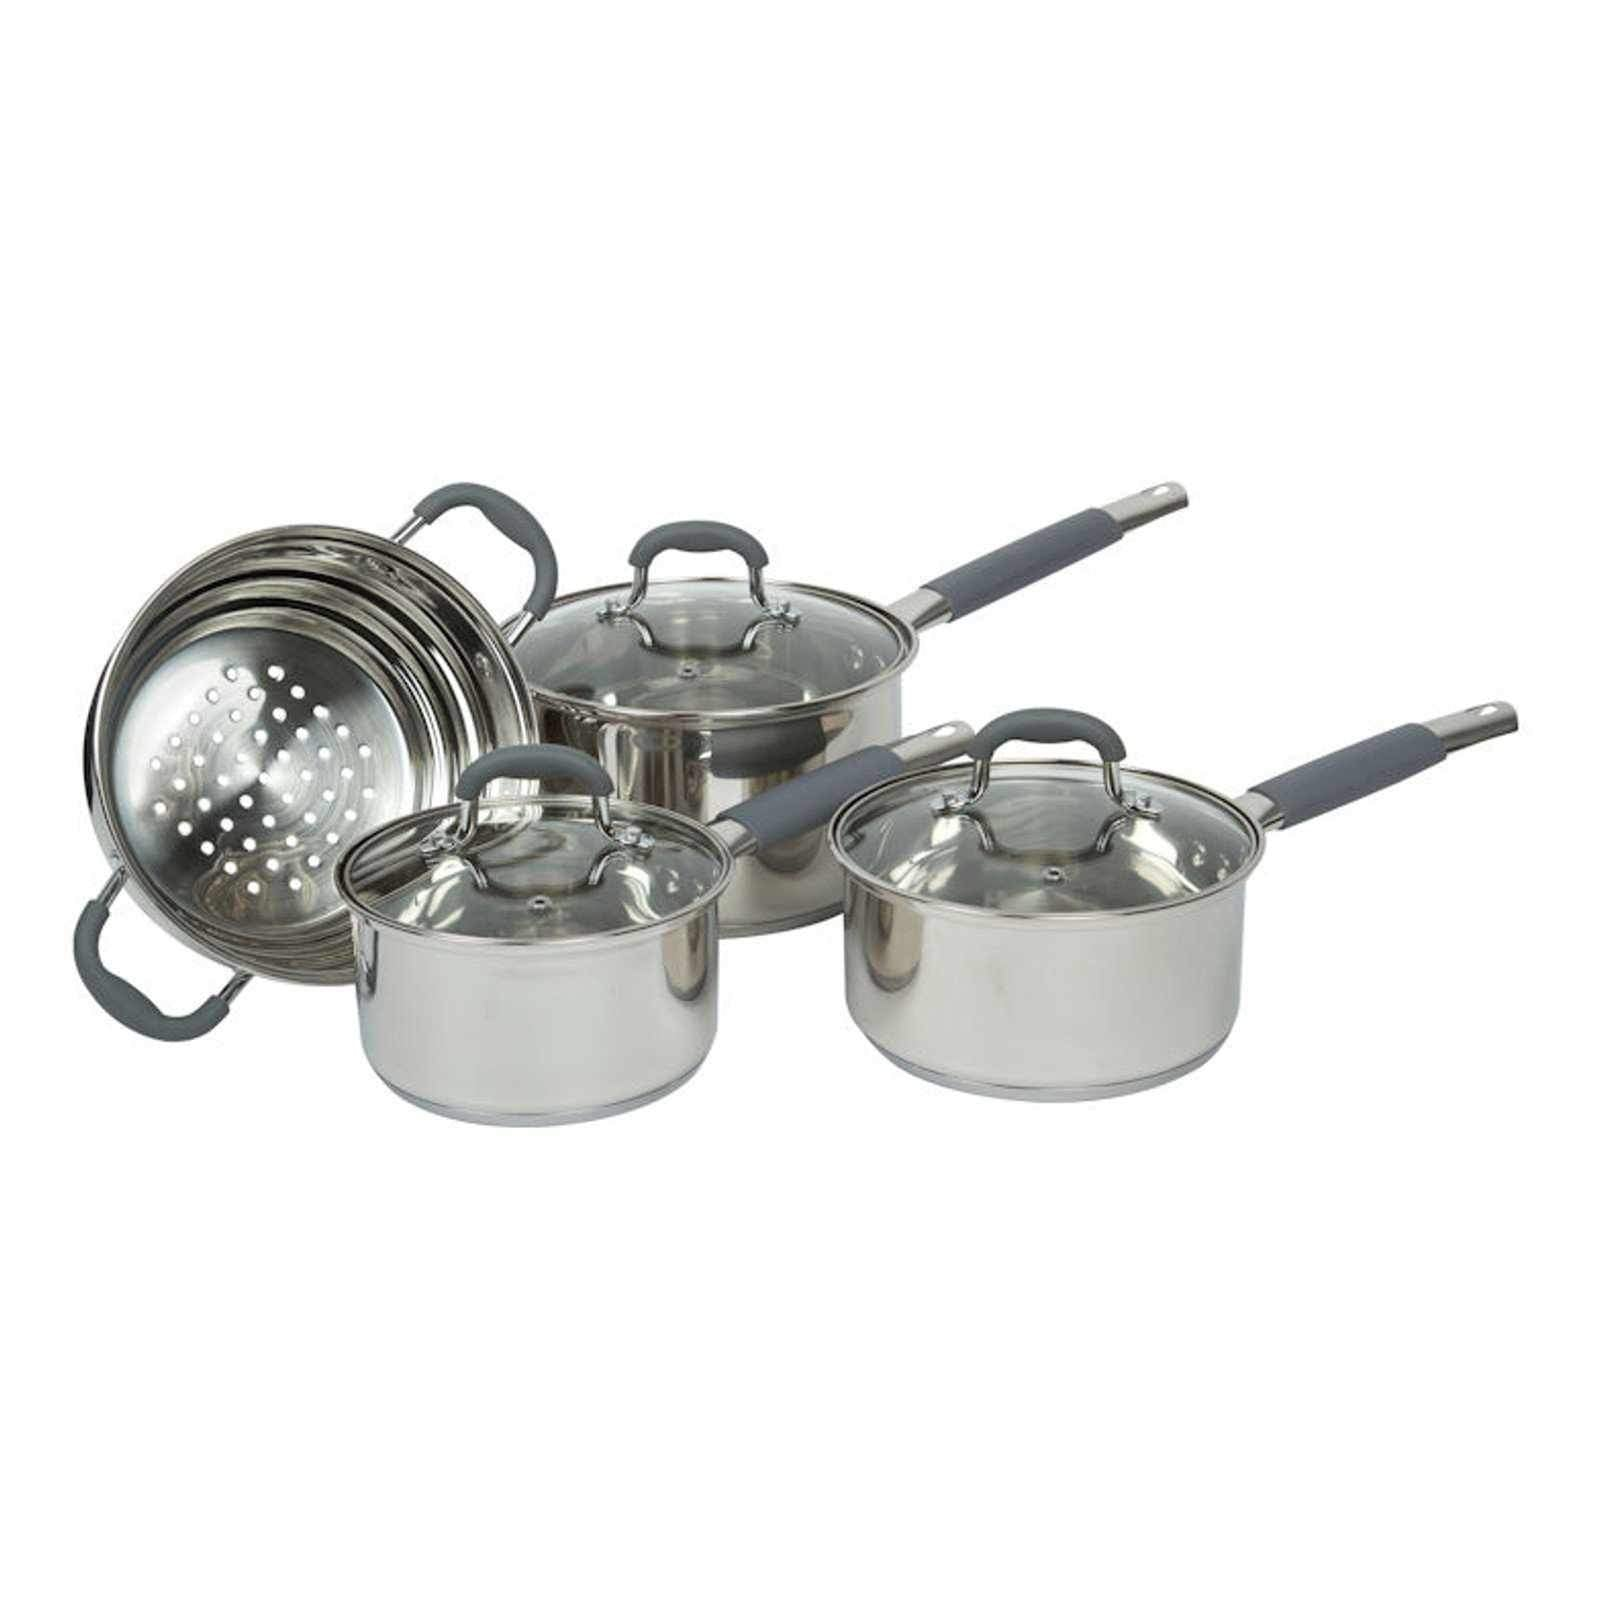 Davis & Waddell 4pcs Argon Cookware set Stainless Steel with Glass Lids-Stainless Steel Cookware Set-Chef's Quality Cookware